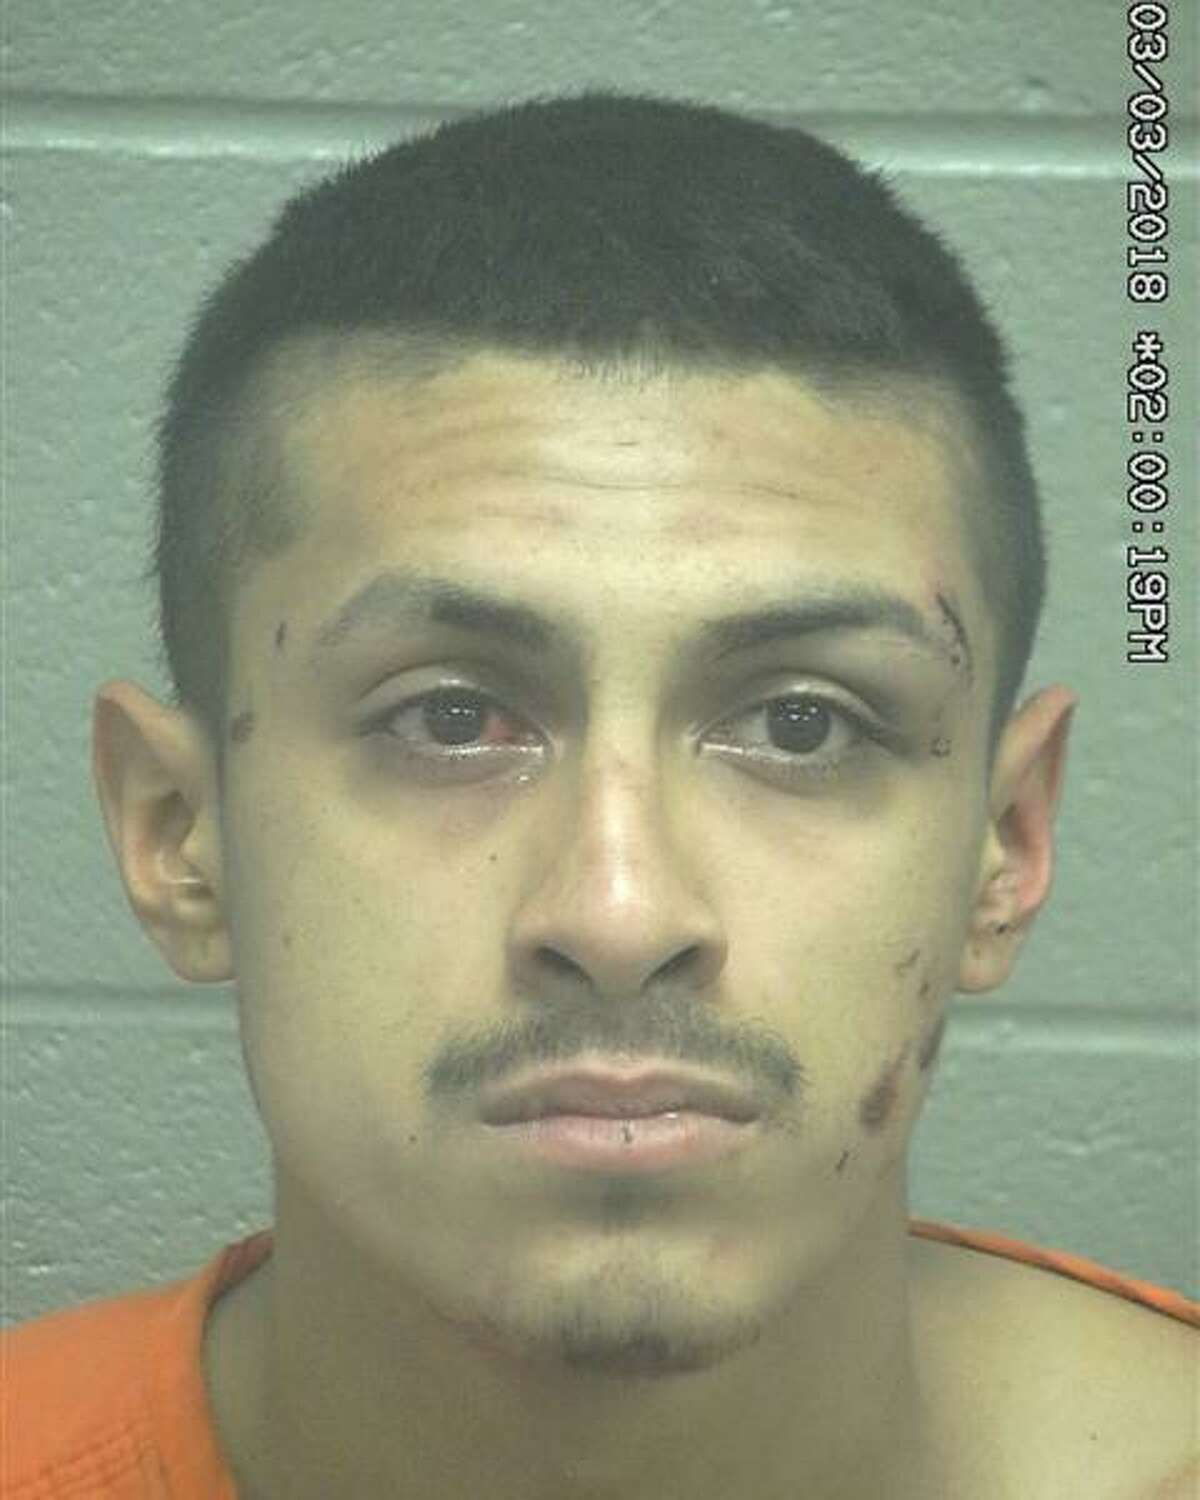 Marco Antonio Sanchez, 22, was arrested March 2 on a second-degree felony charges of assault against a peace officer and two misdemeanor charges of failure to identify and resisting arrest. READ MORE:Two men arrested on assault charges